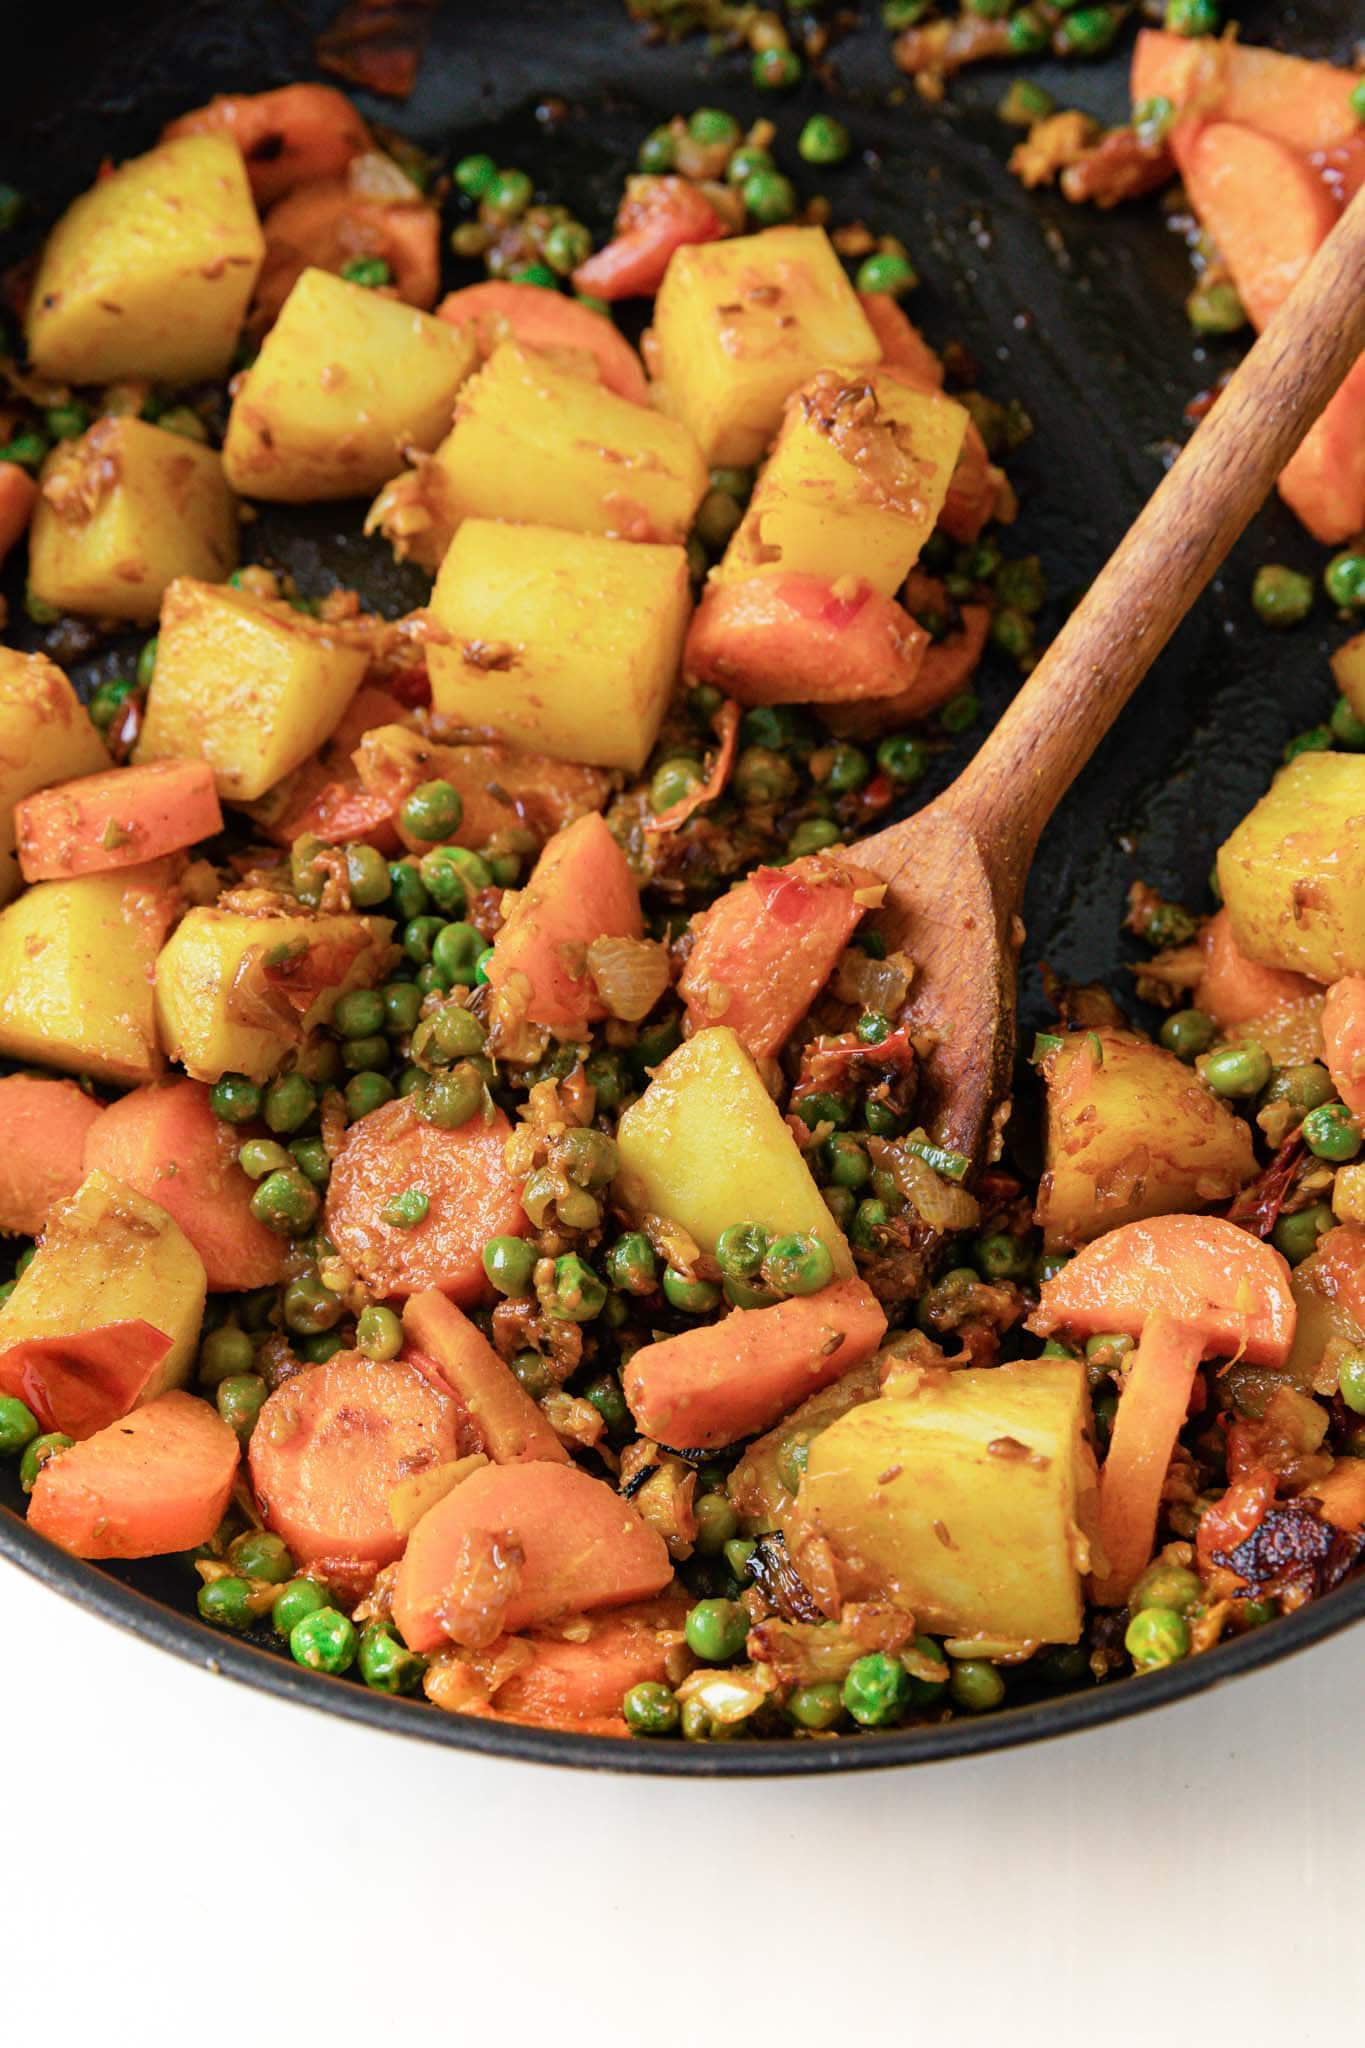 Potatoes, carrots, and peas in a black pan with a wooden spoon